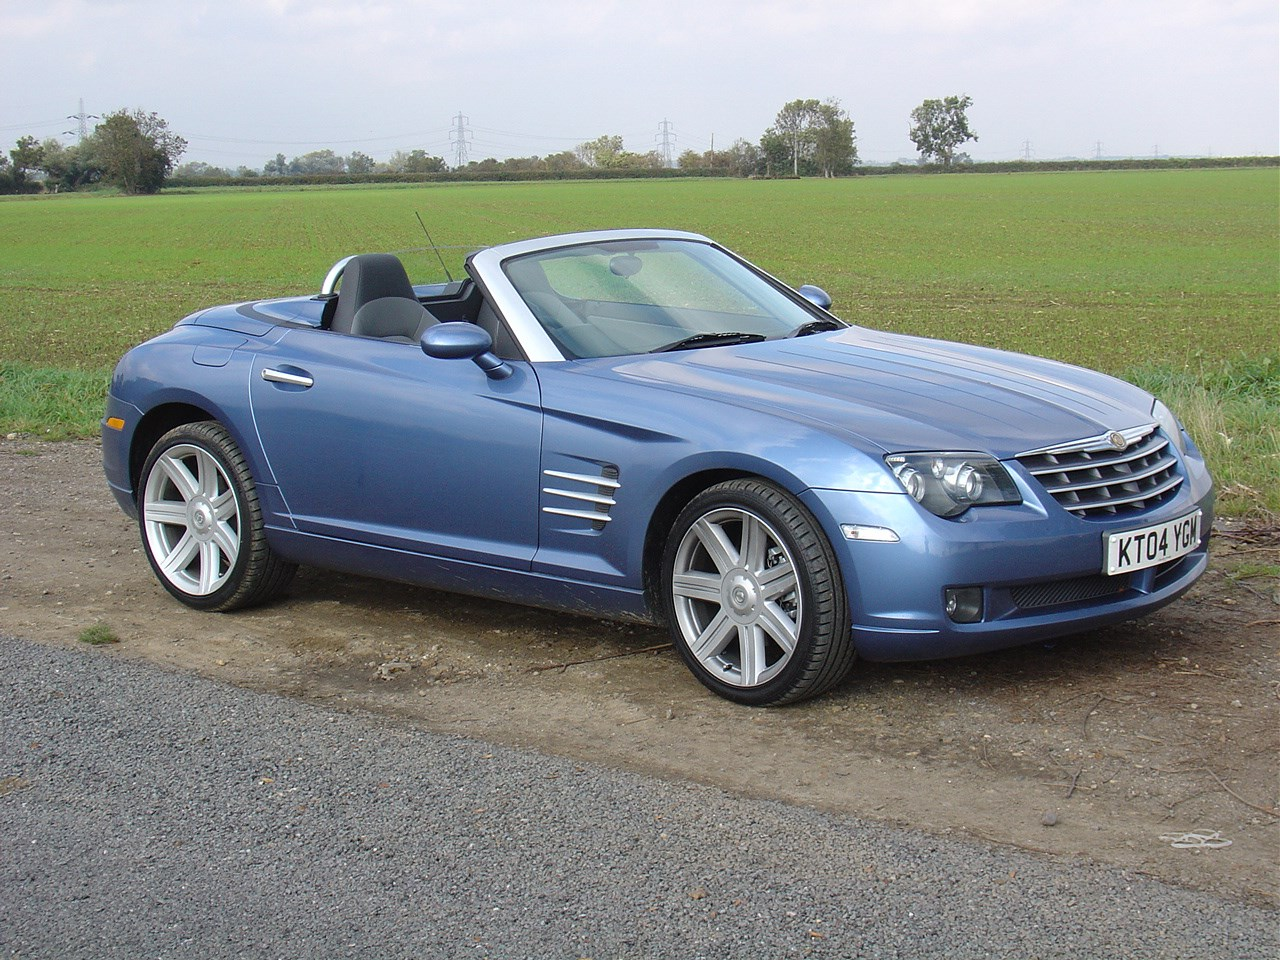 Honda Owners Manual >> Used Chrysler Crossfire Roadster (2004 - 2008) Review ...